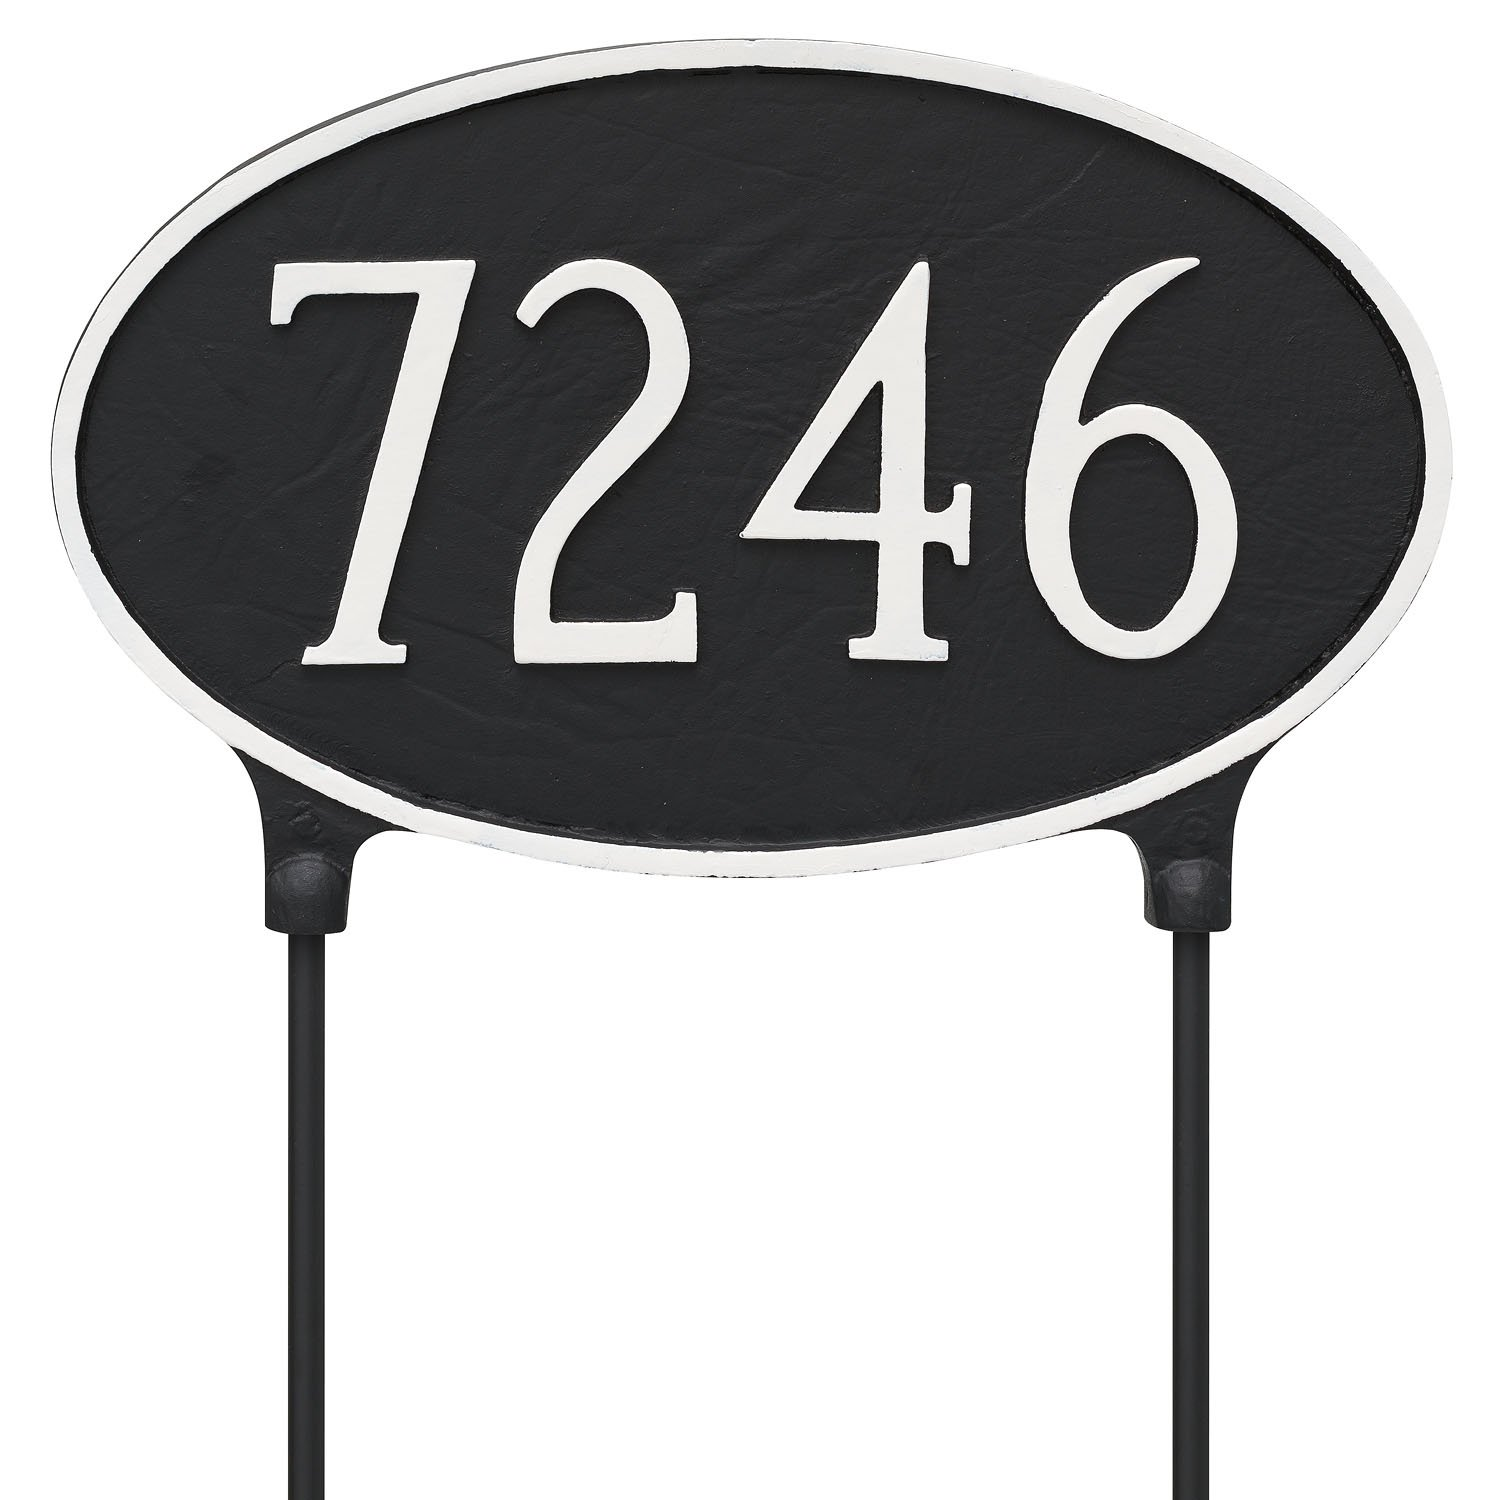 Montague Metal TSL-0002S1-L-BW 10.5'' x 18'' Double Sided Lawn Classic Oval Address Sign Plaque with Stake, Large, Black/White by Montague Metal